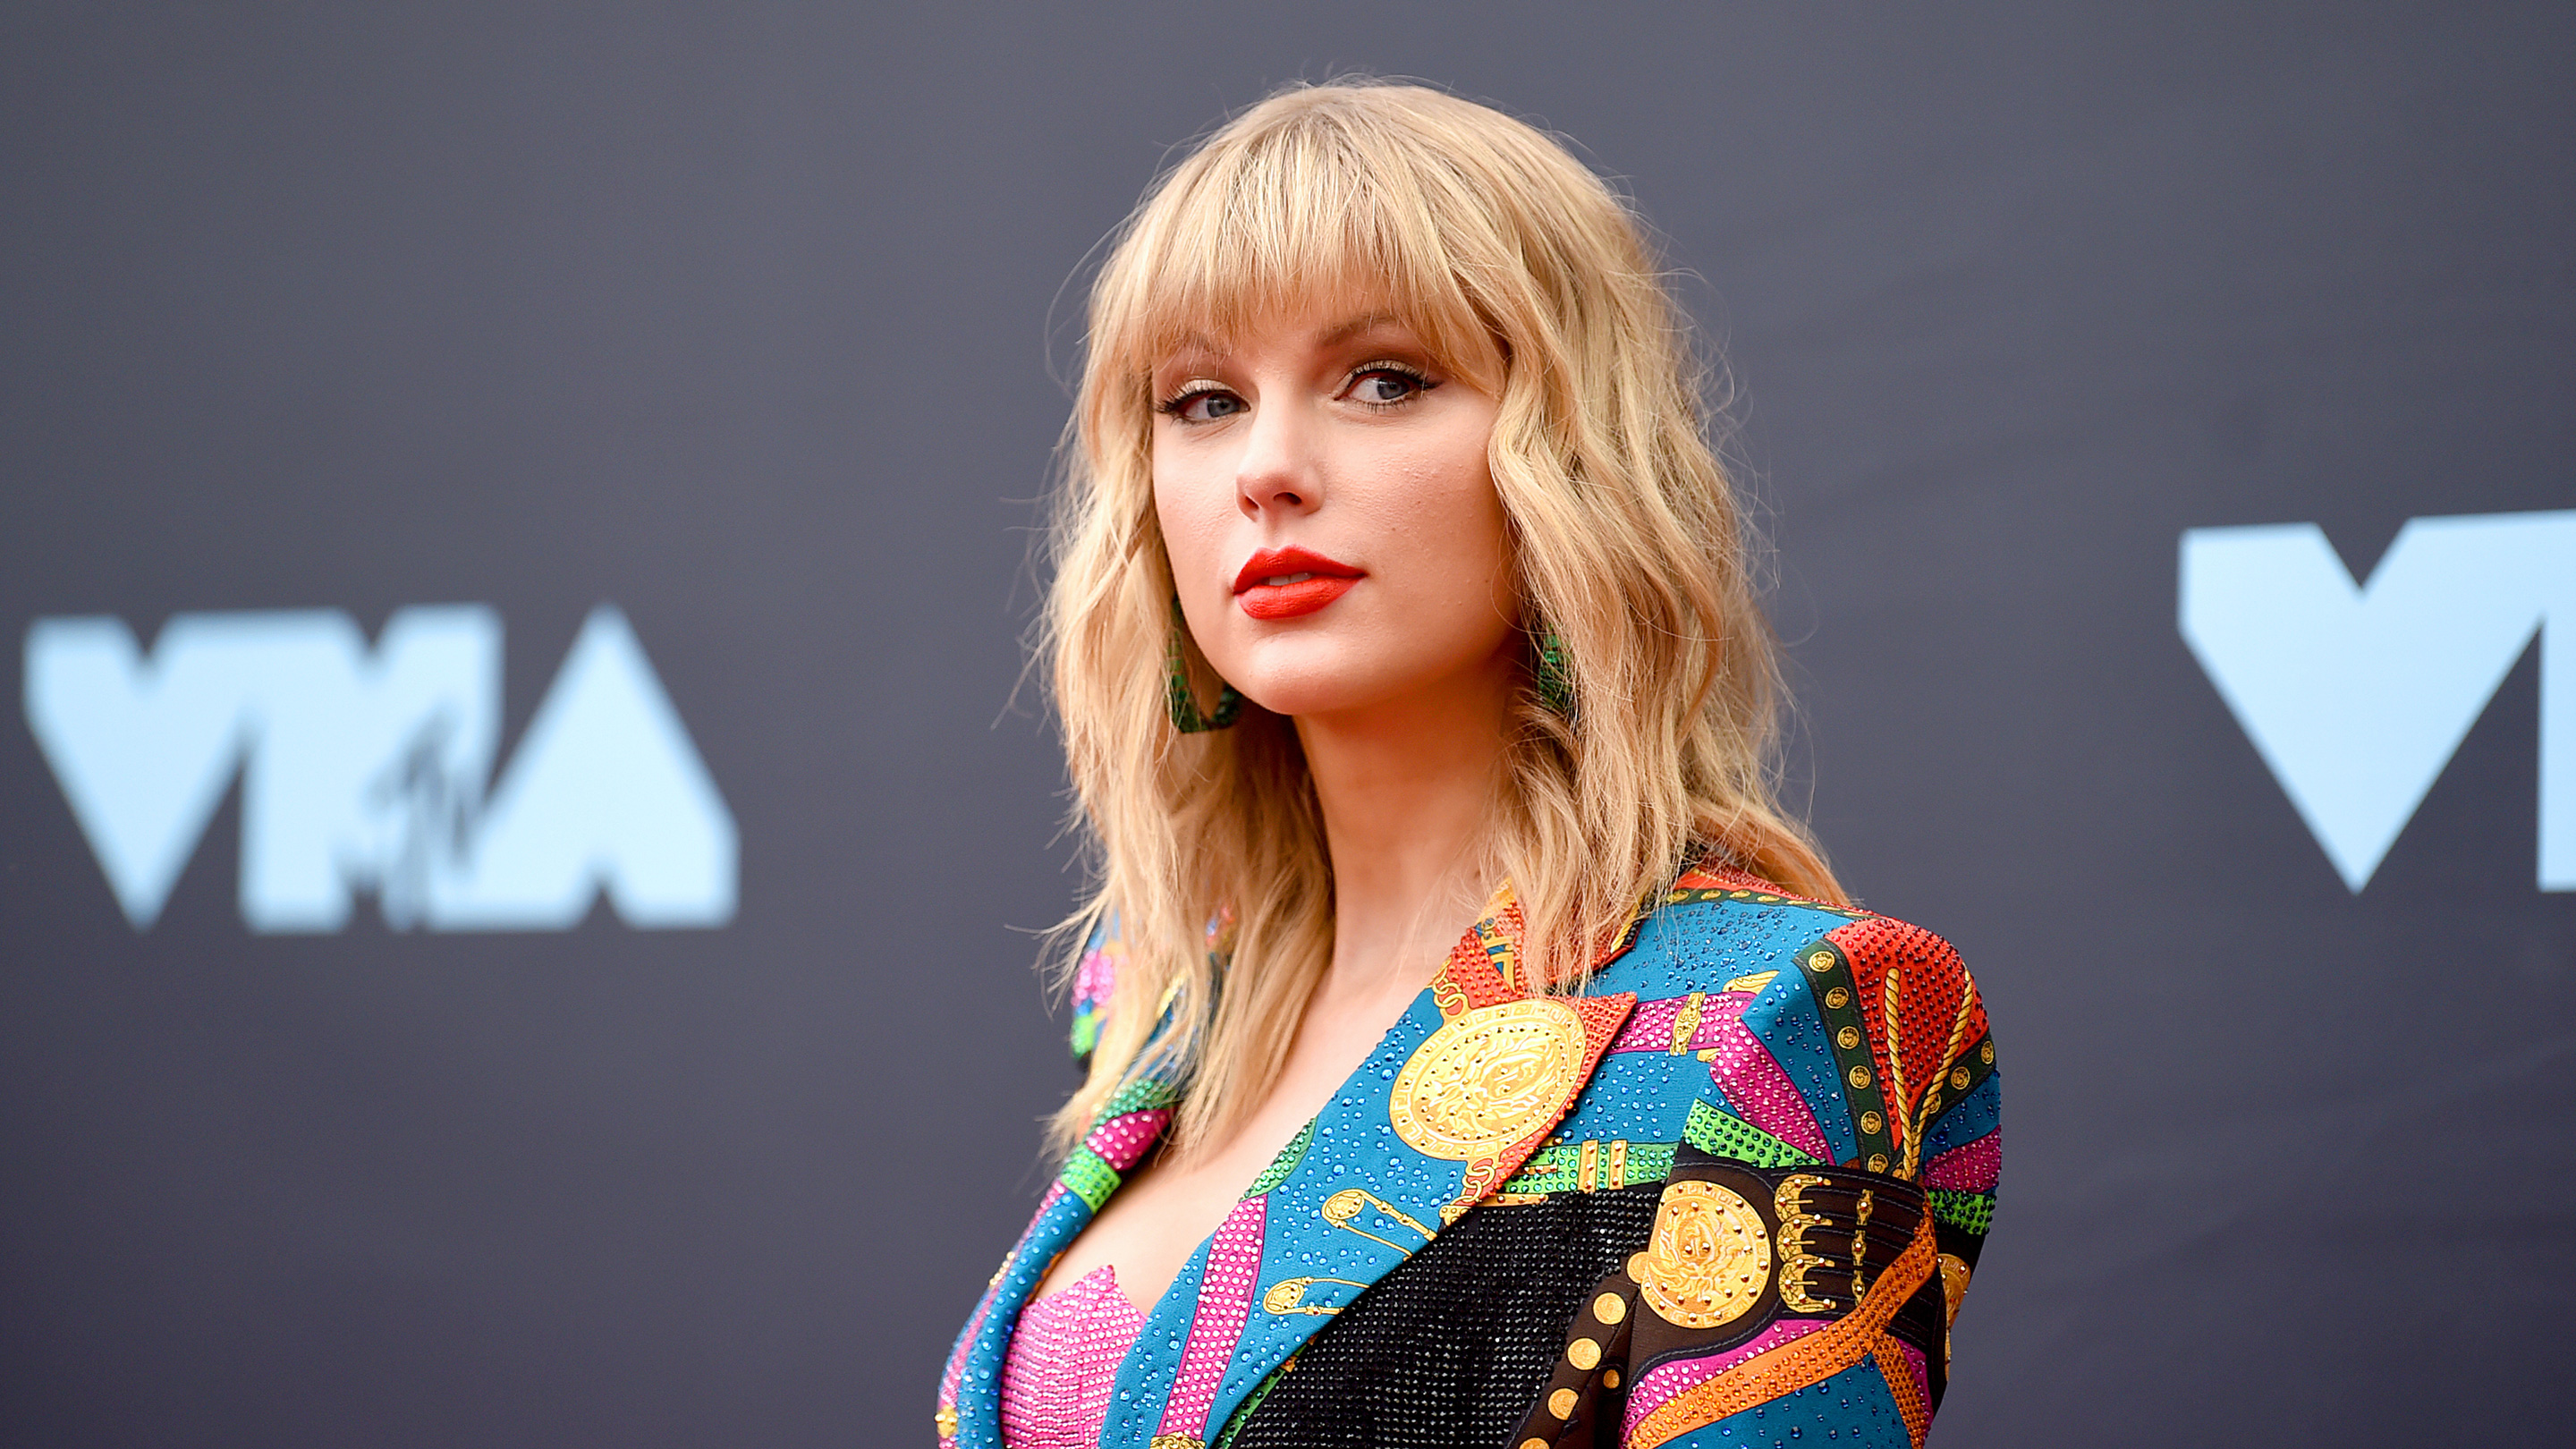 Taylor Swift Rerecording Her Old Songs To Control The Licenses Marketplace